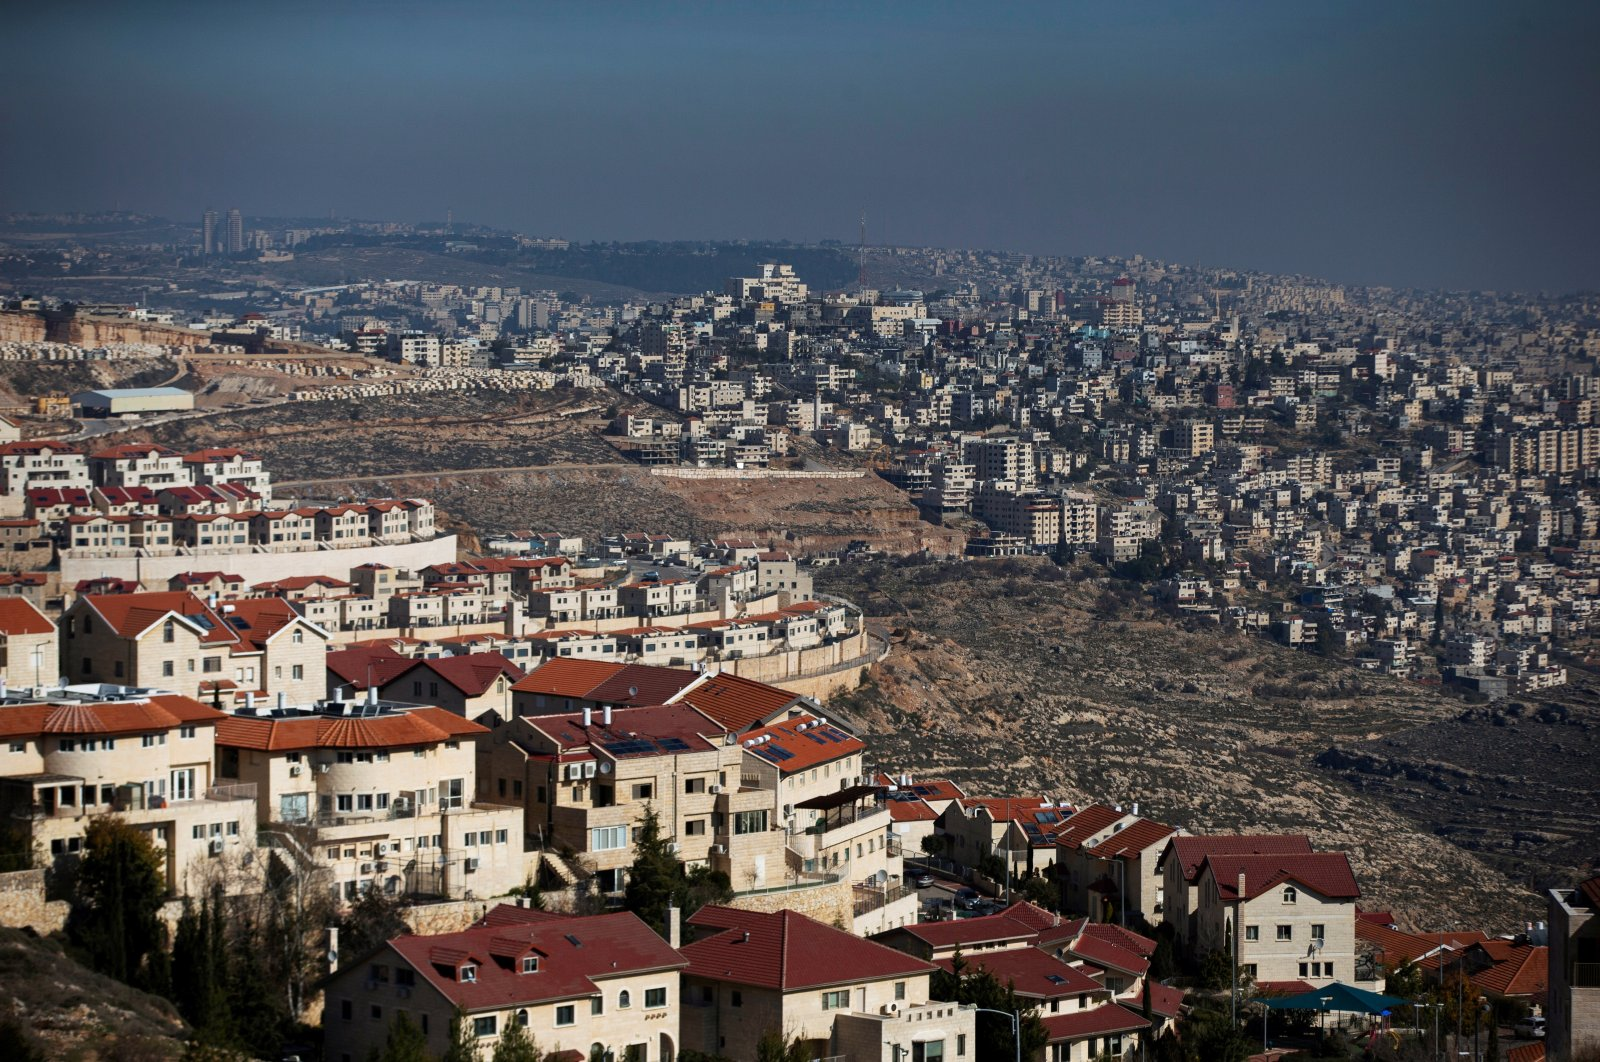 A general view shows the Israeli settlement of Efrat (L) in the Gush Etzion settlement block as Bethlehem is seen in the background, in the Israeli-occupied West Bank, Palestine, Jan. 28, 2020. (Reuters Photo)